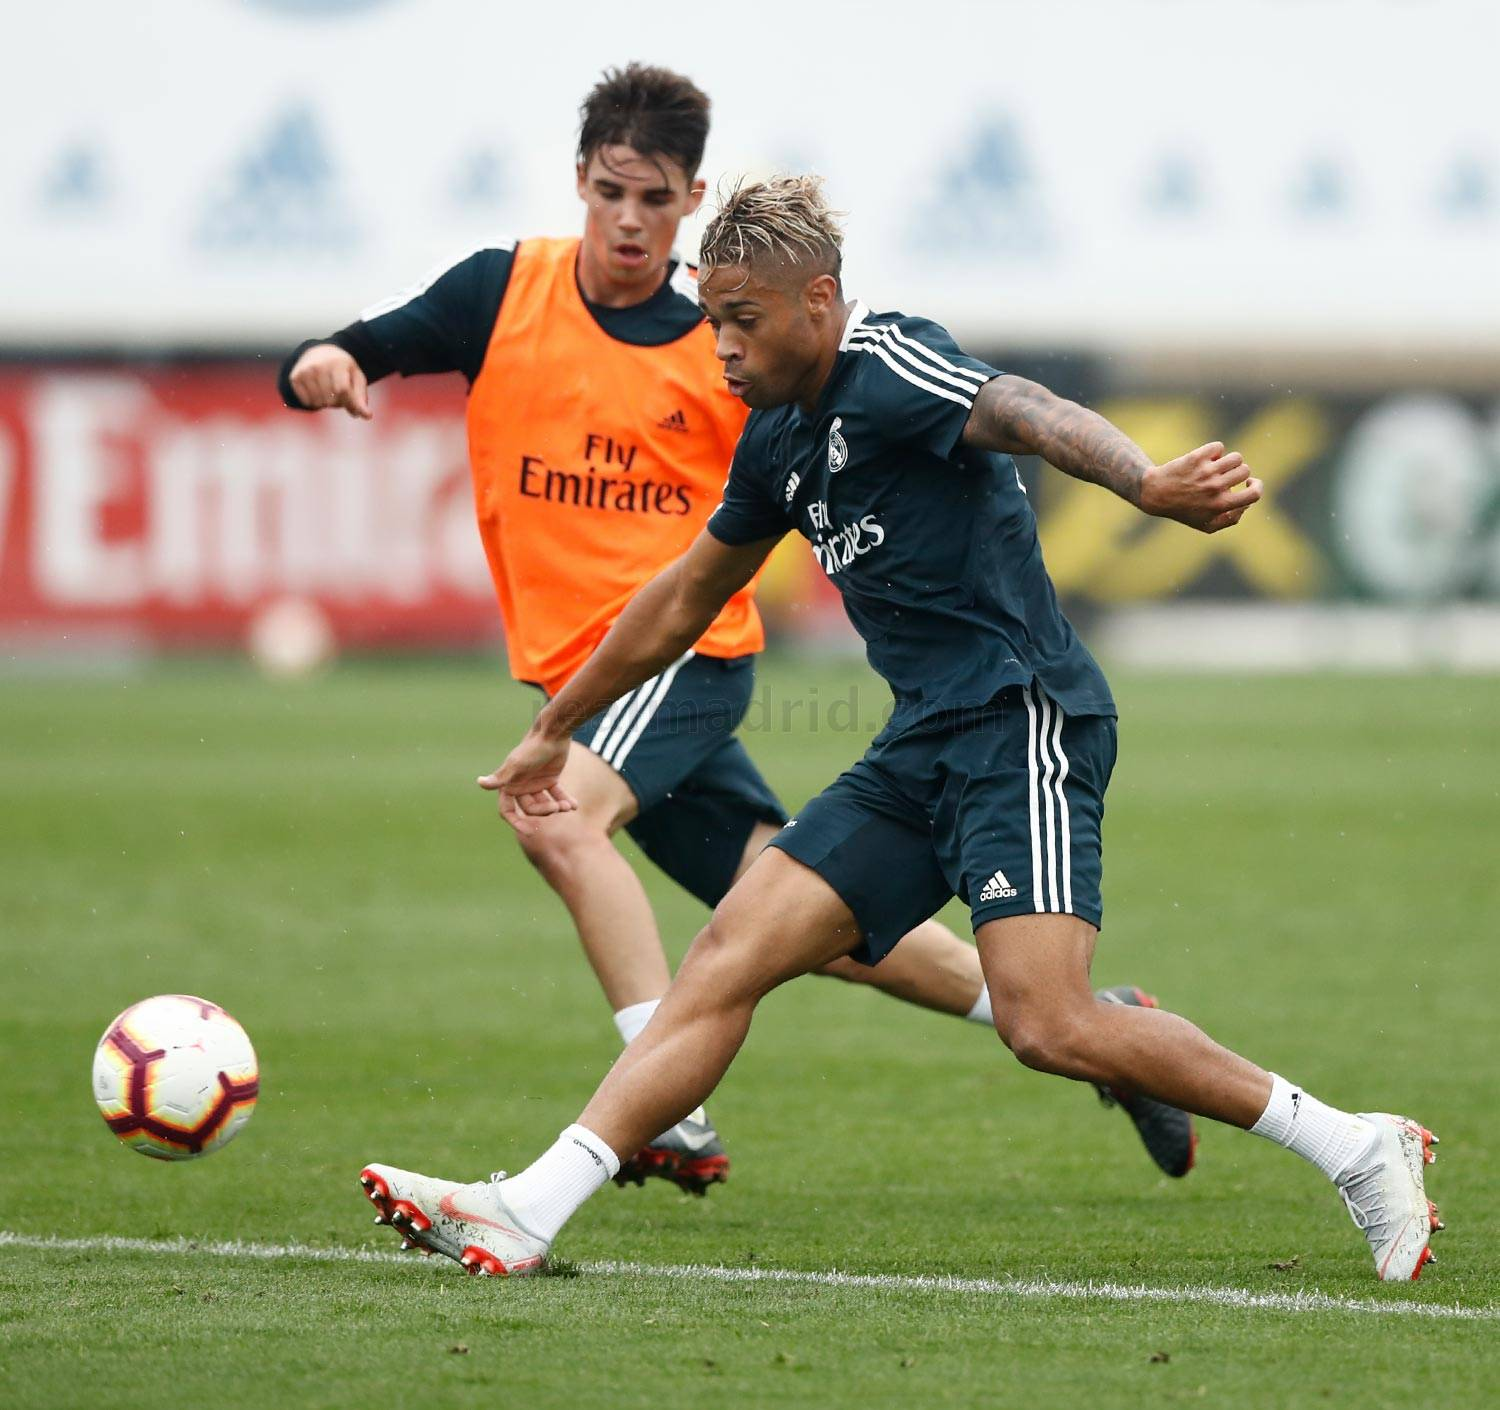 Real Madrid - Entrenamiento del Real Madrid - 11-10-2018